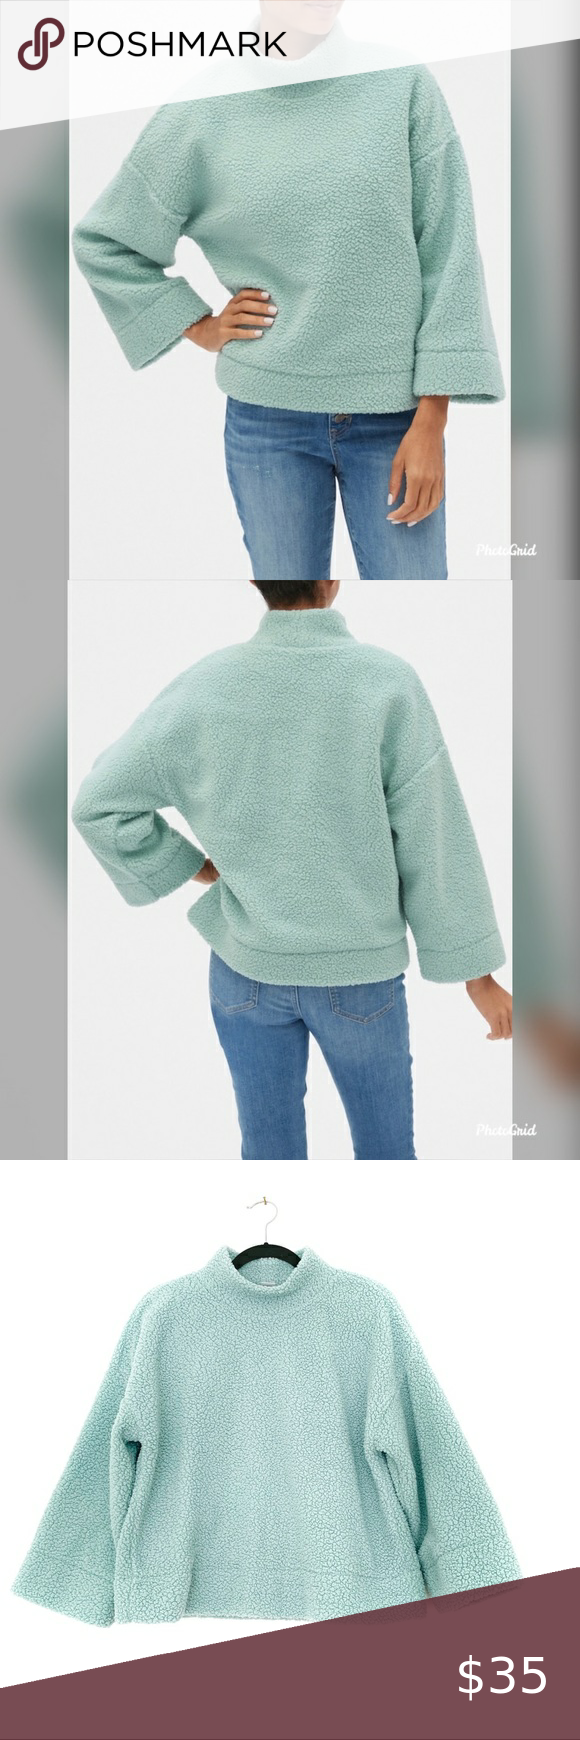 Gap Blue Teddy Bear Sherpa Pullover Mockneck Nwt Incredibly Soft And Cozy 23 Long 22 Pit To Pit 16 Sleeves Ta Sherpa Pullover Pullover Clothes Design [ 1740 x 580 Pixel ]